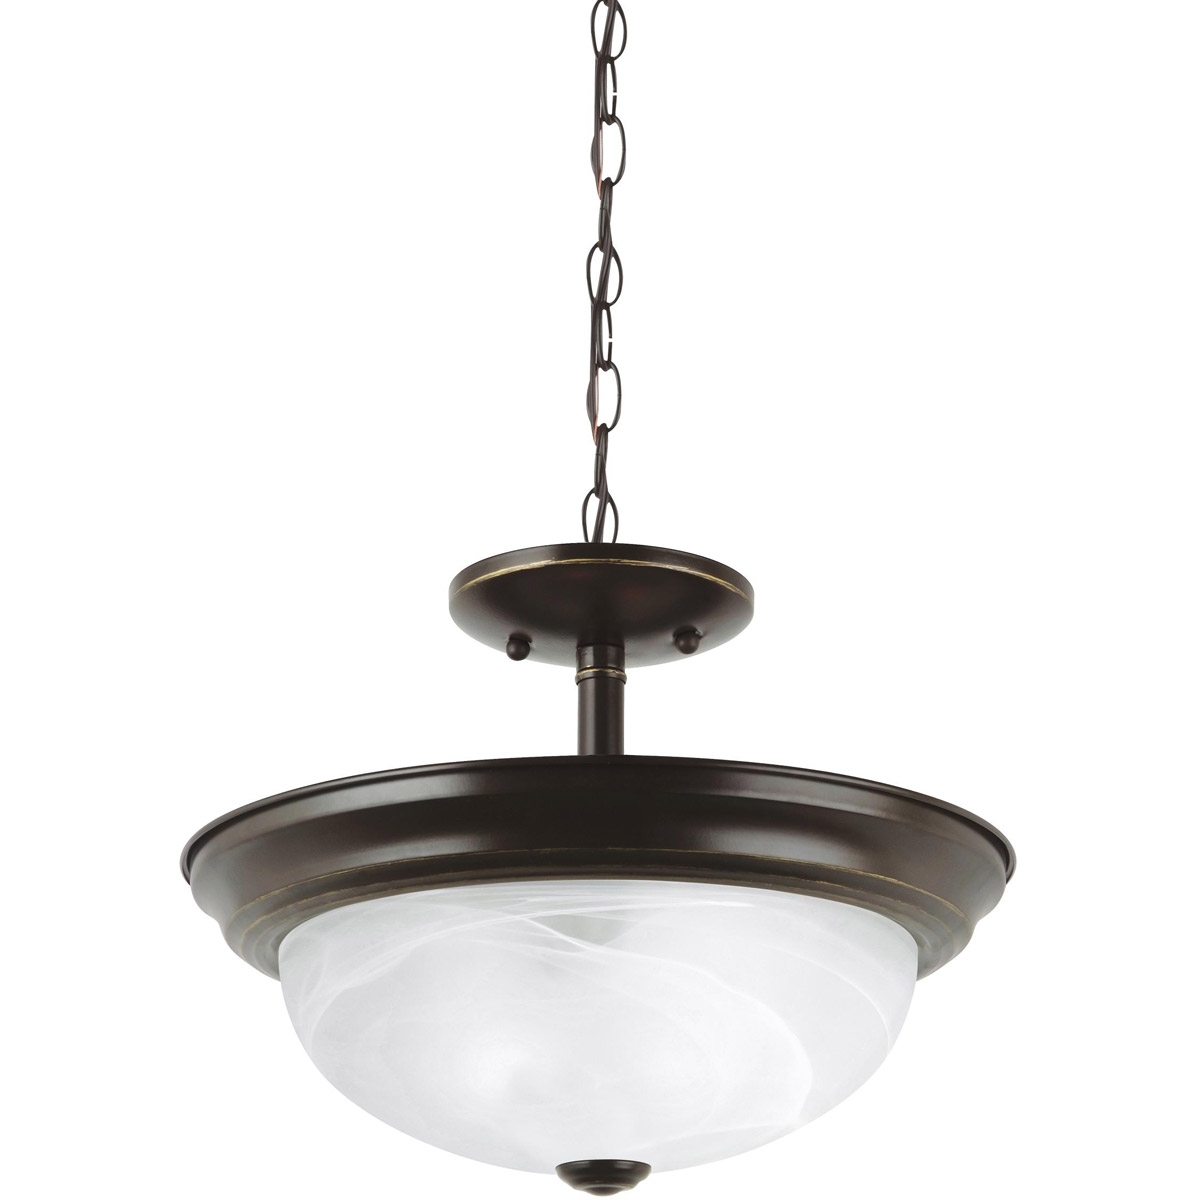 Sea Gull Lighting Windgate 2 Light Semi-Flush Mount in Heirloom Bronze 77950-782 photo